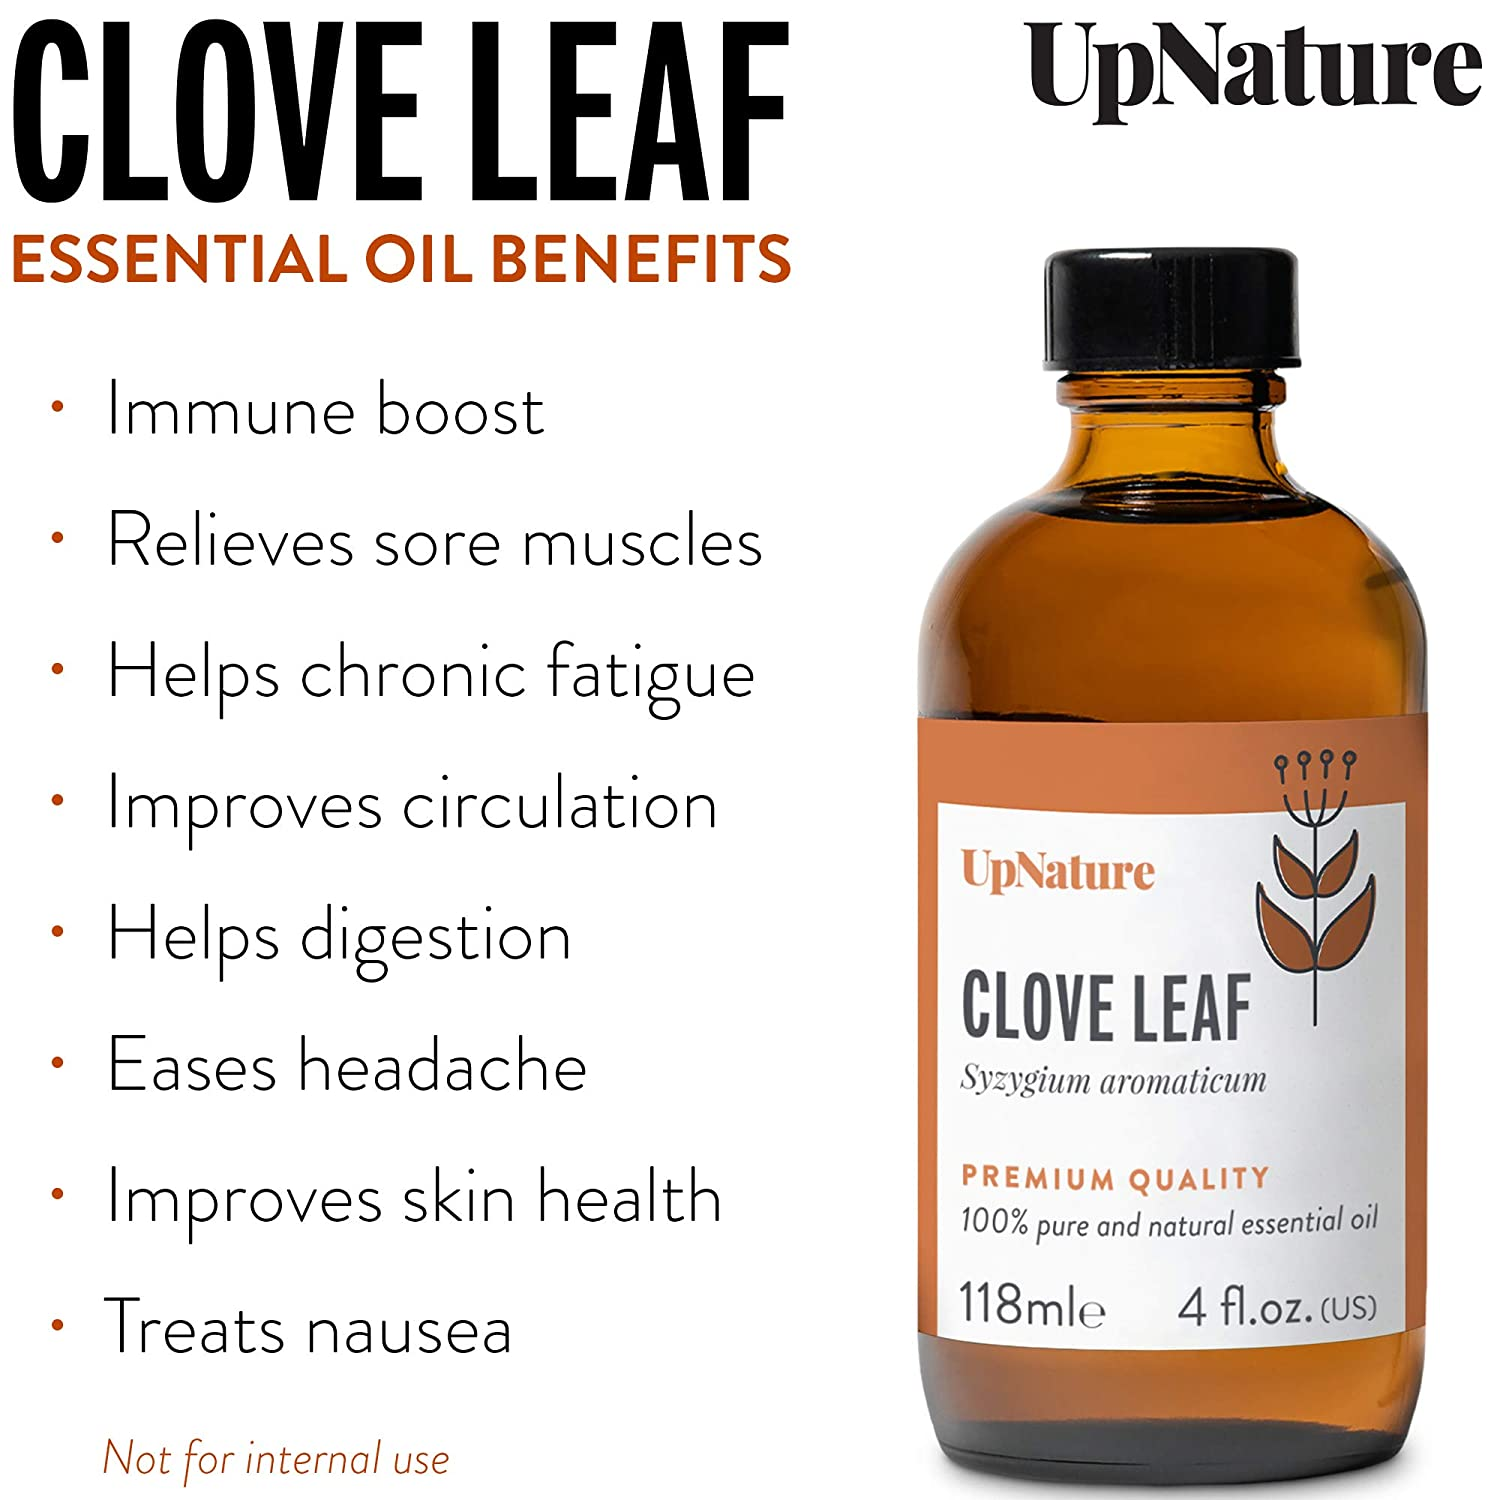 Clove Oil Essential Oil 4oz – Pure Clove Essential Oil - Relief & Promotes Healthy Gums, Clove Oil for Tooth Aches, Fight Candida, Soothe Headaches – Undiluted, Unfiltered, Non-GMO & Therapeutic Grade